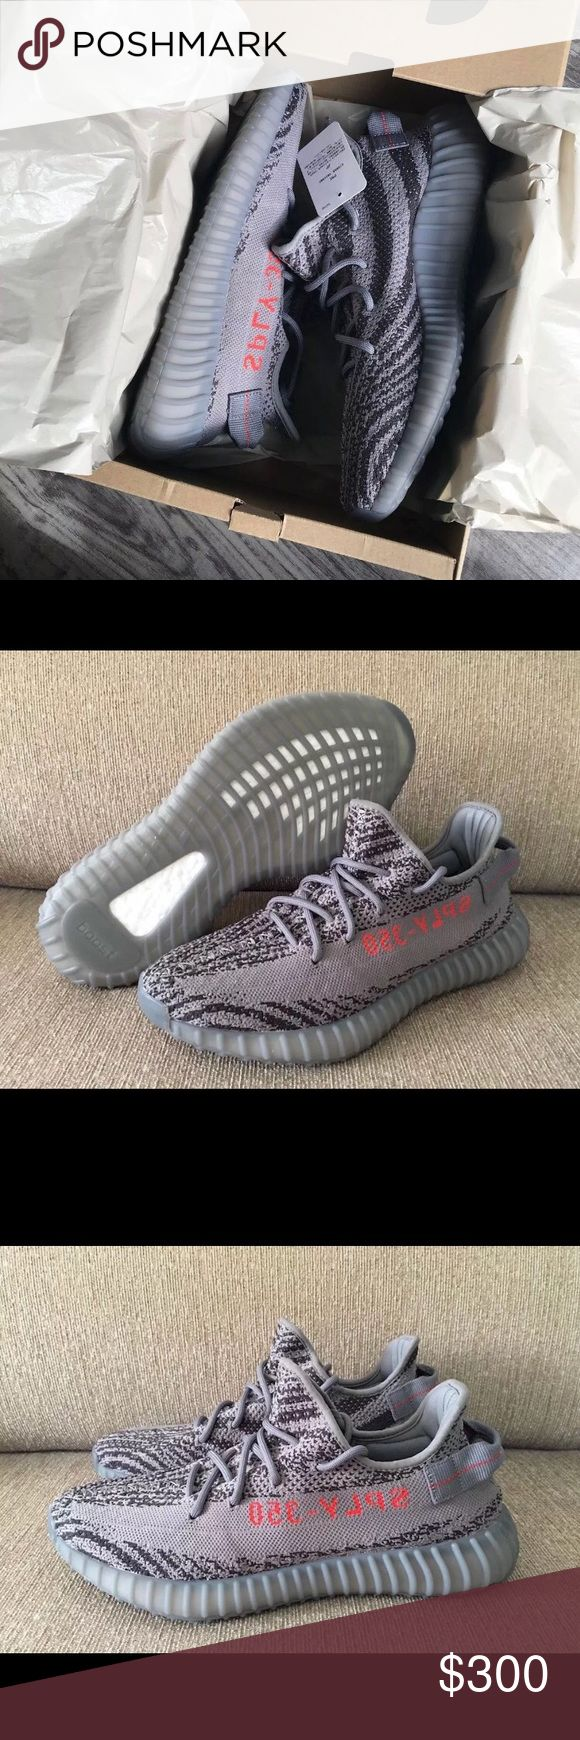 Adidas Yeezy Boost 350 V2 Beluga 2.0 SIZES 4-13 Adidas Yeezy Boost 350 V2 Beluga 2.0 SIZES 4-13 AVAILABLE Color: Grey/Bold Orange/Dark Grey Style Code: AH2203 Condition: New With Box 100% authentic Contact me: (917) 789-1733 Yeezy Shoes Sneakers